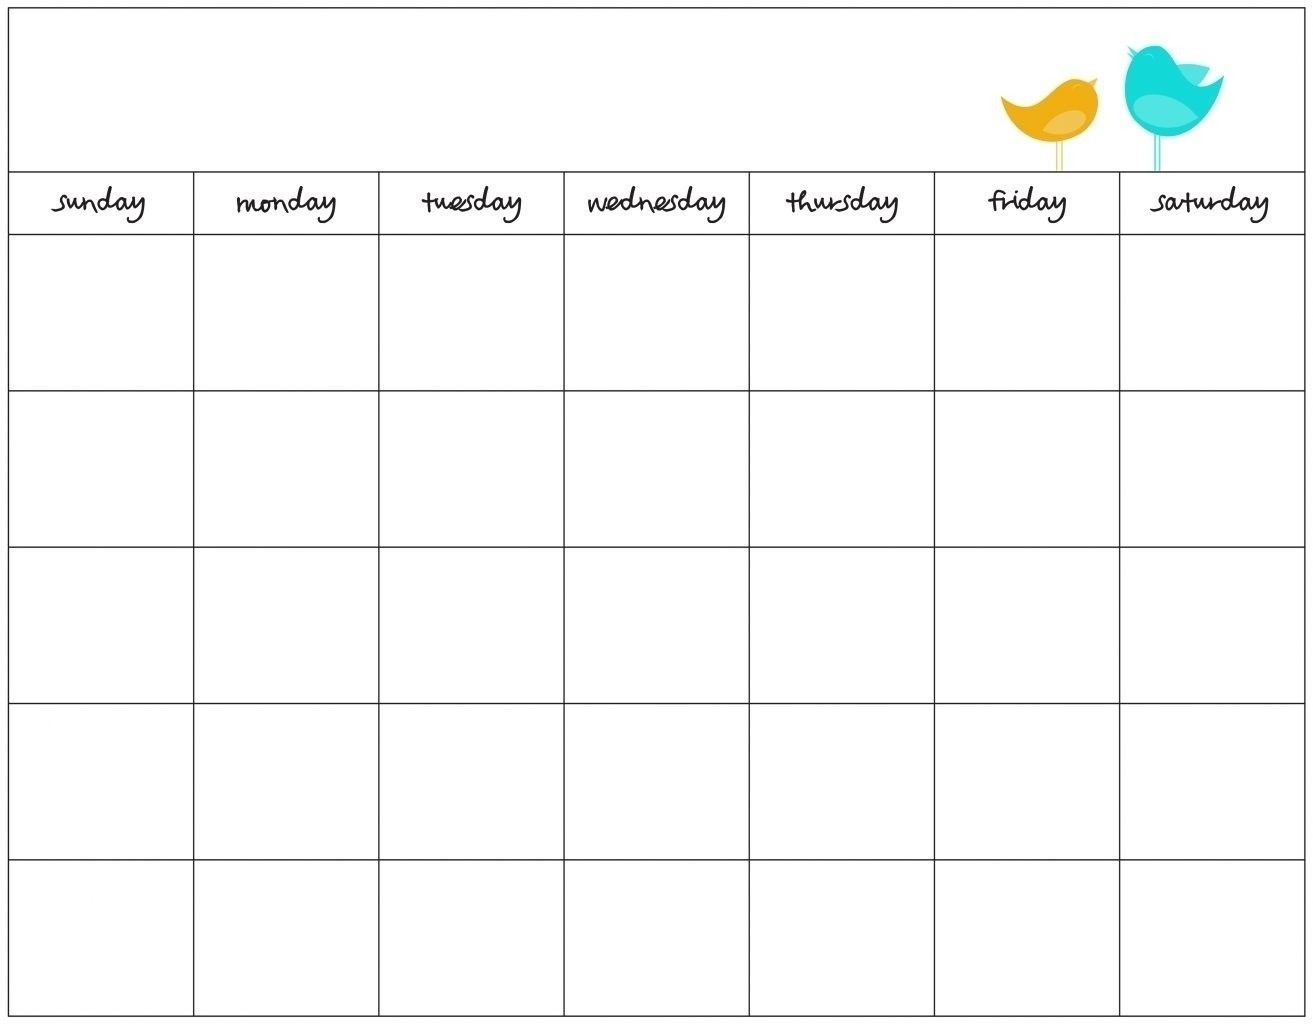 Seven Day Calendar E Week Printable Schedule Grid Es | Smorad pertaining to 7-Day Week Blank Calendar Template